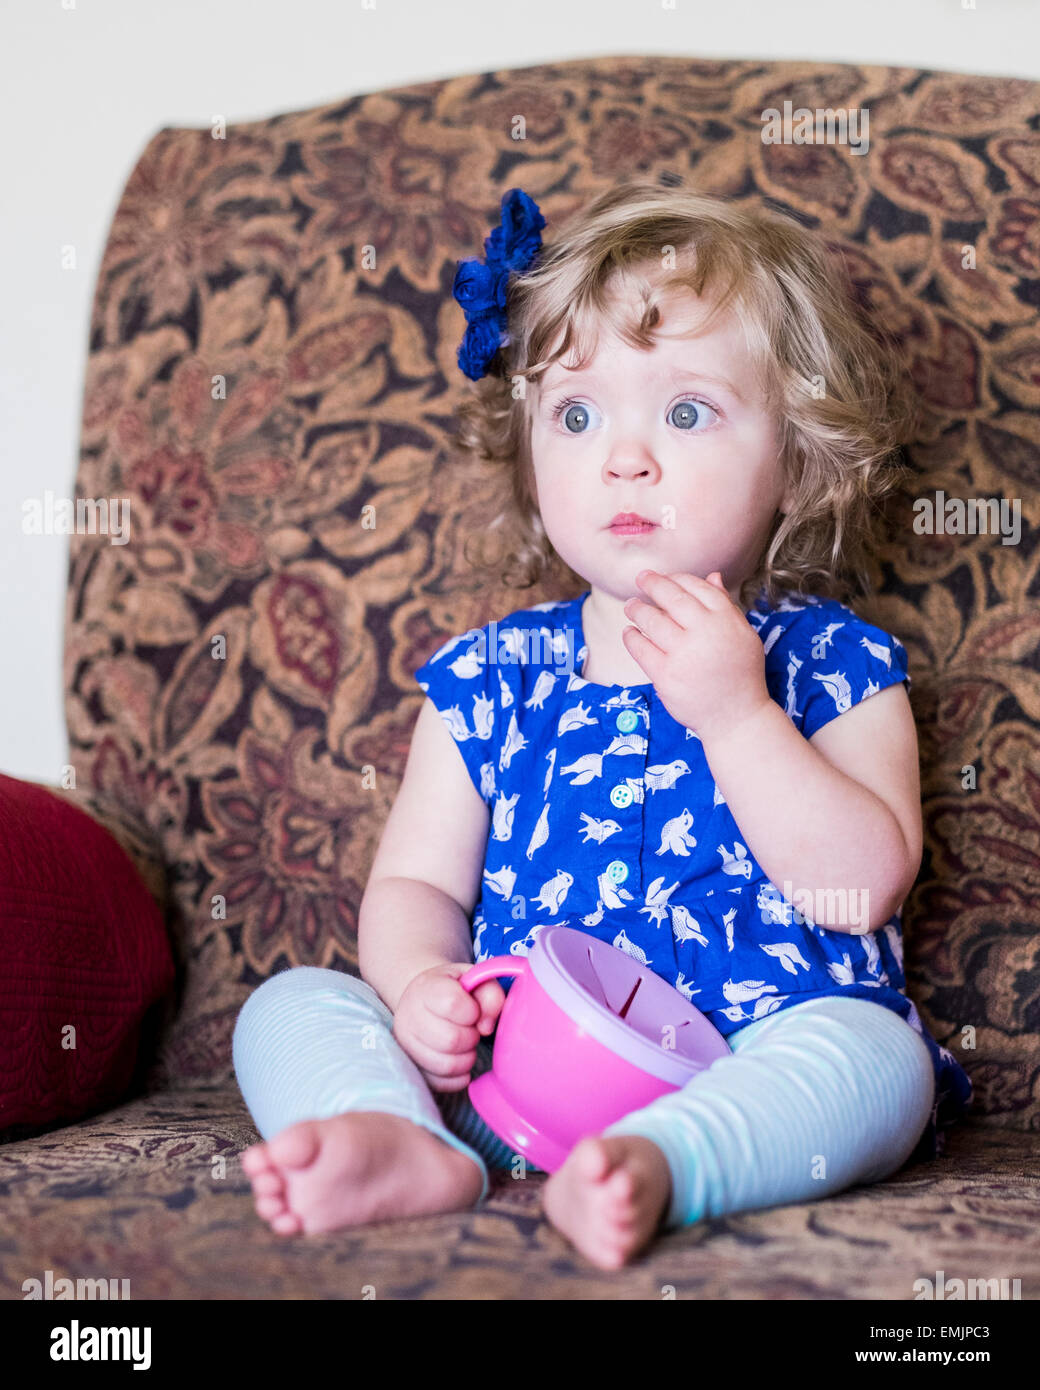 A Beautiful 14 Month Old Caucasian Girl Sits In A Chair